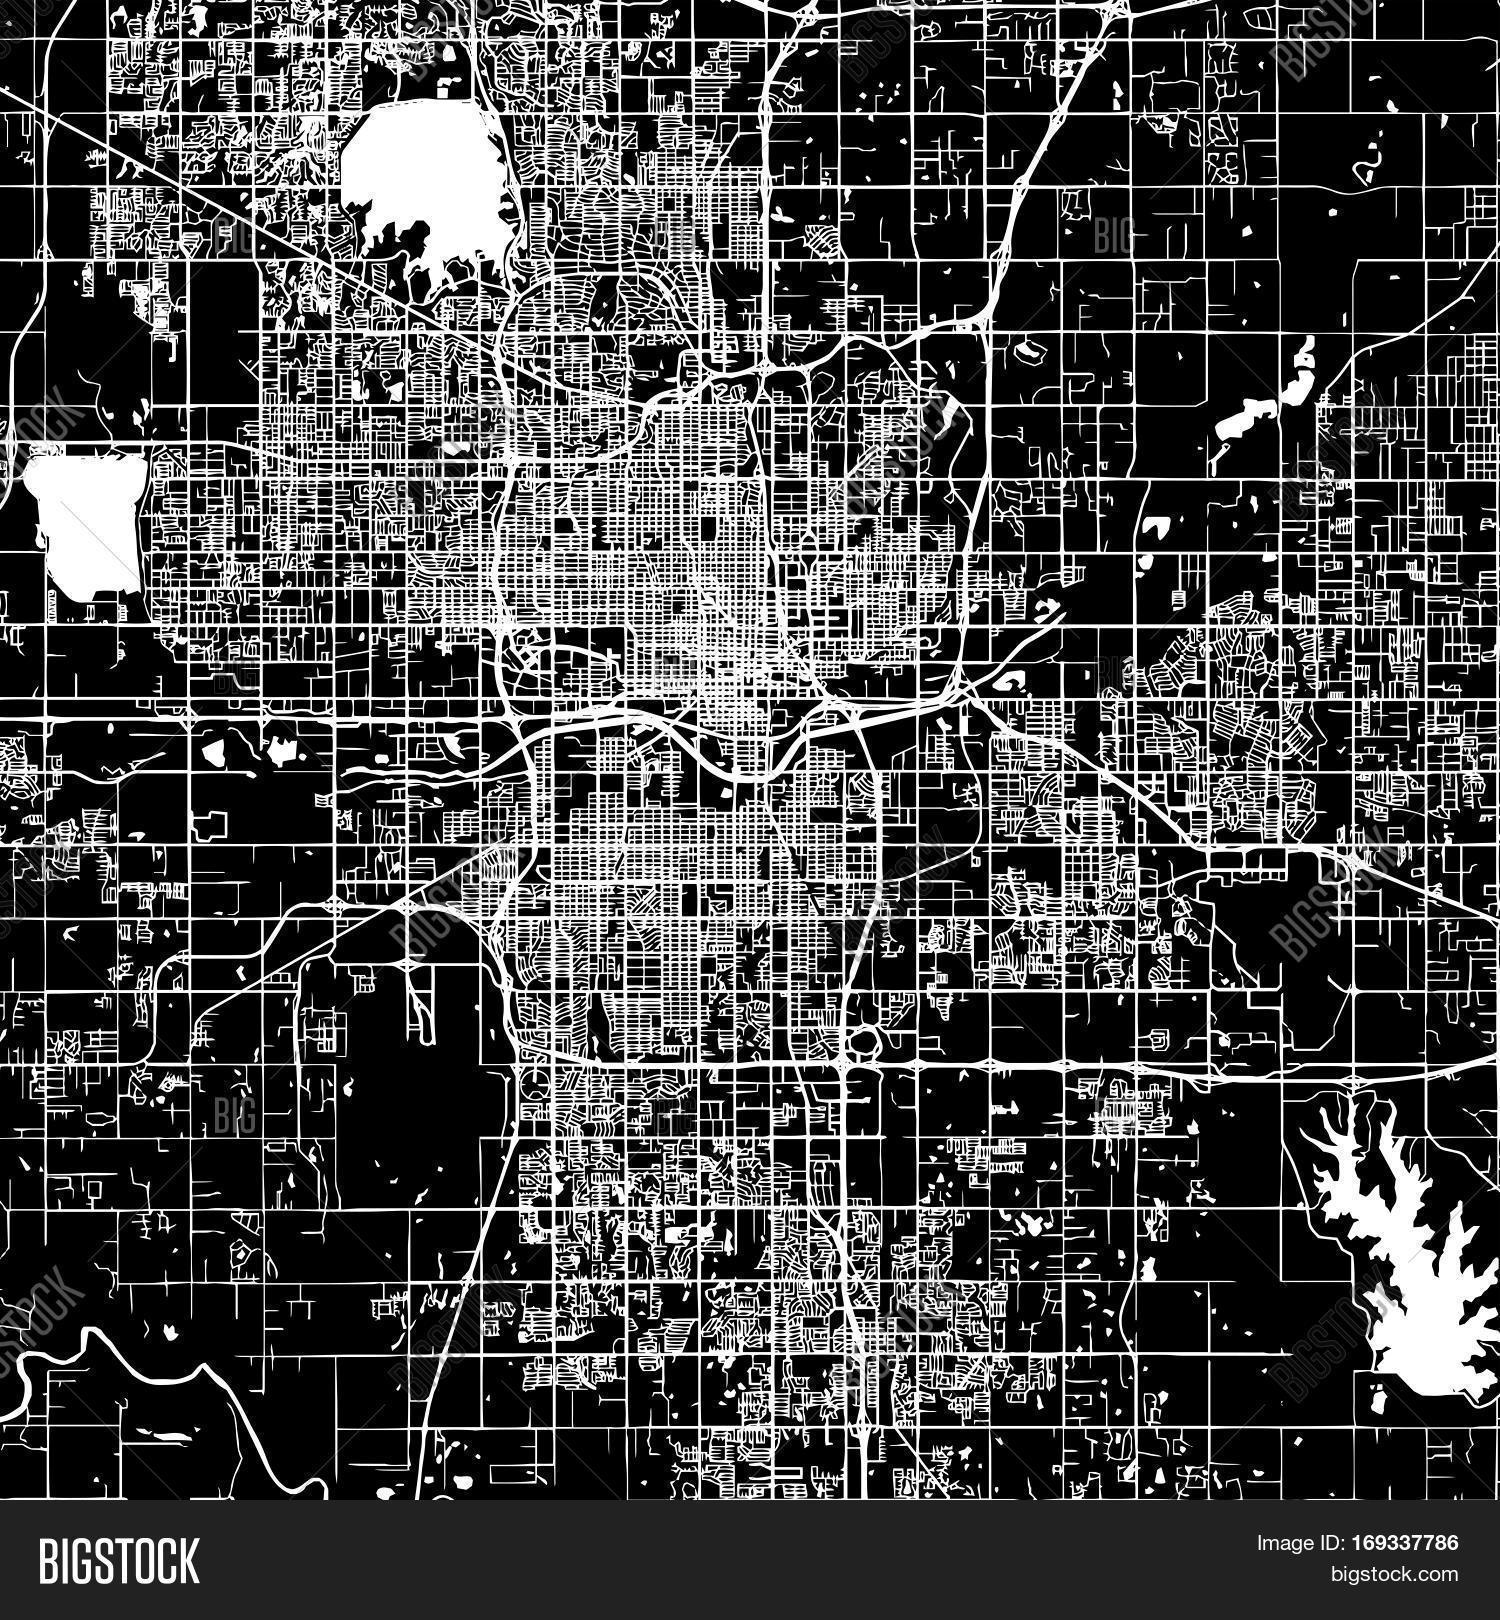 Oklahoma city vector map artprint black landmass white water and roads